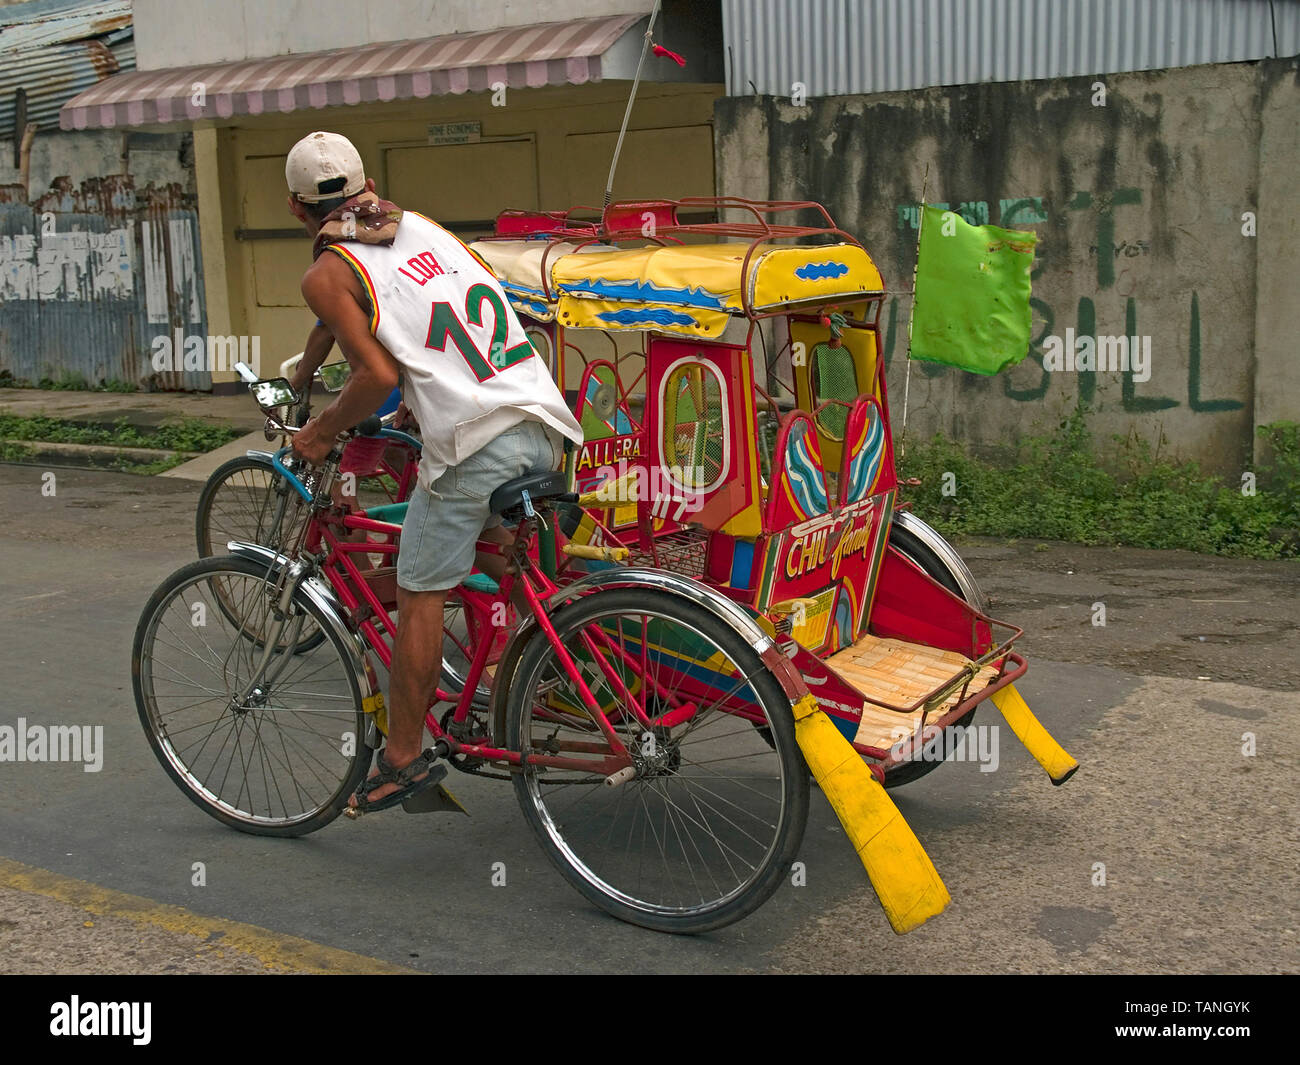 Filipino with traditional Tricycle, common public transportation, Moalboal, Cebu, Central Visayas, Philippines - Stock Image